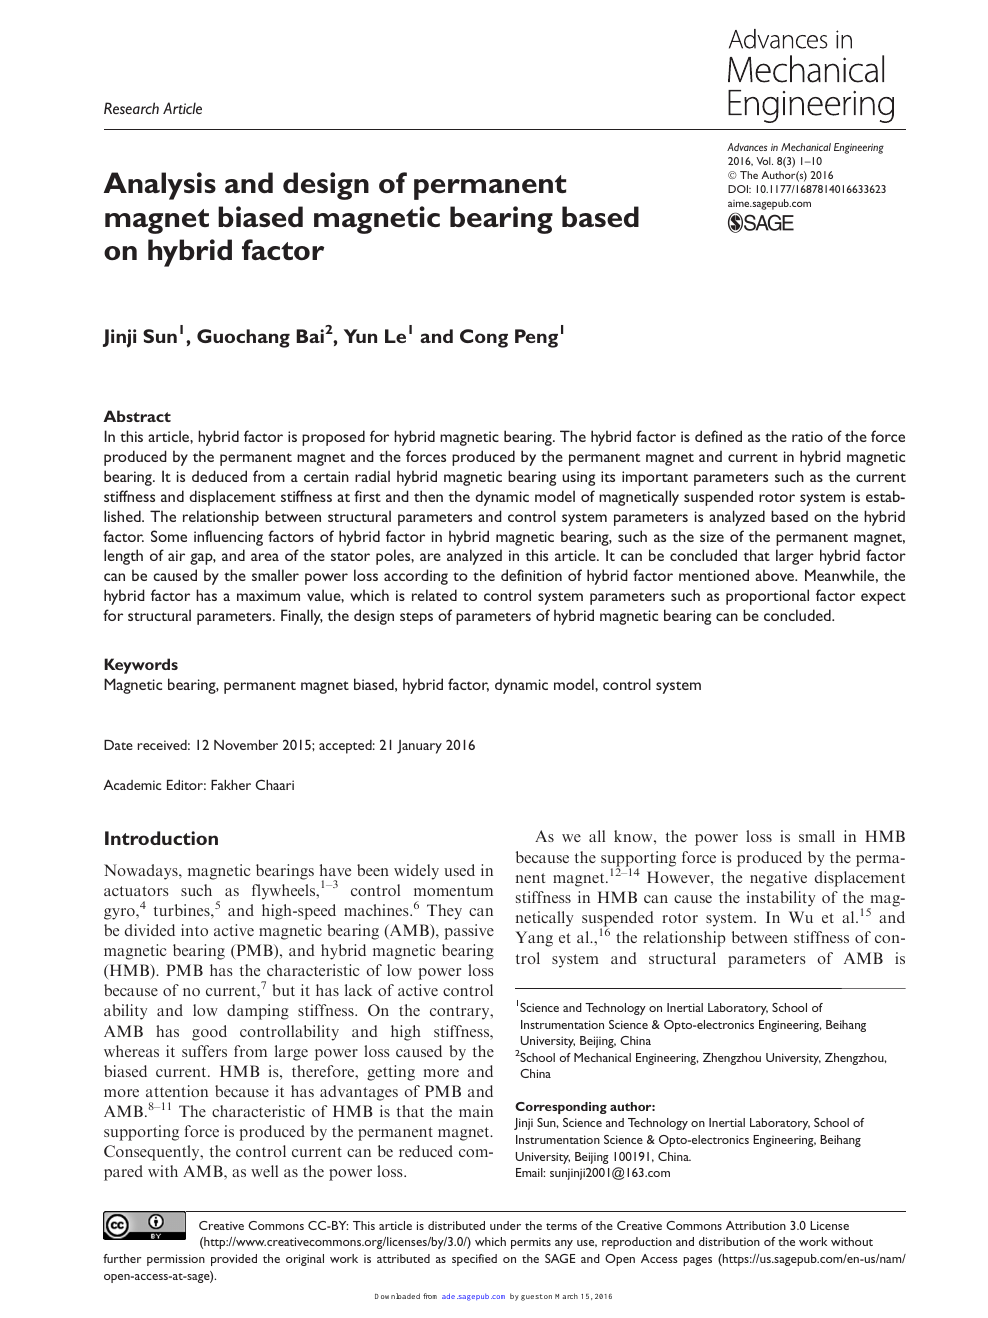 Analysis And Design Of Permanent Magnet Biased Magnetic Bearing Based On Hybrid Factor Topic Of Research Paper In Mechanical Engineering Download Scholarly Article Pdf And Read For Free On Cyberleninka Open